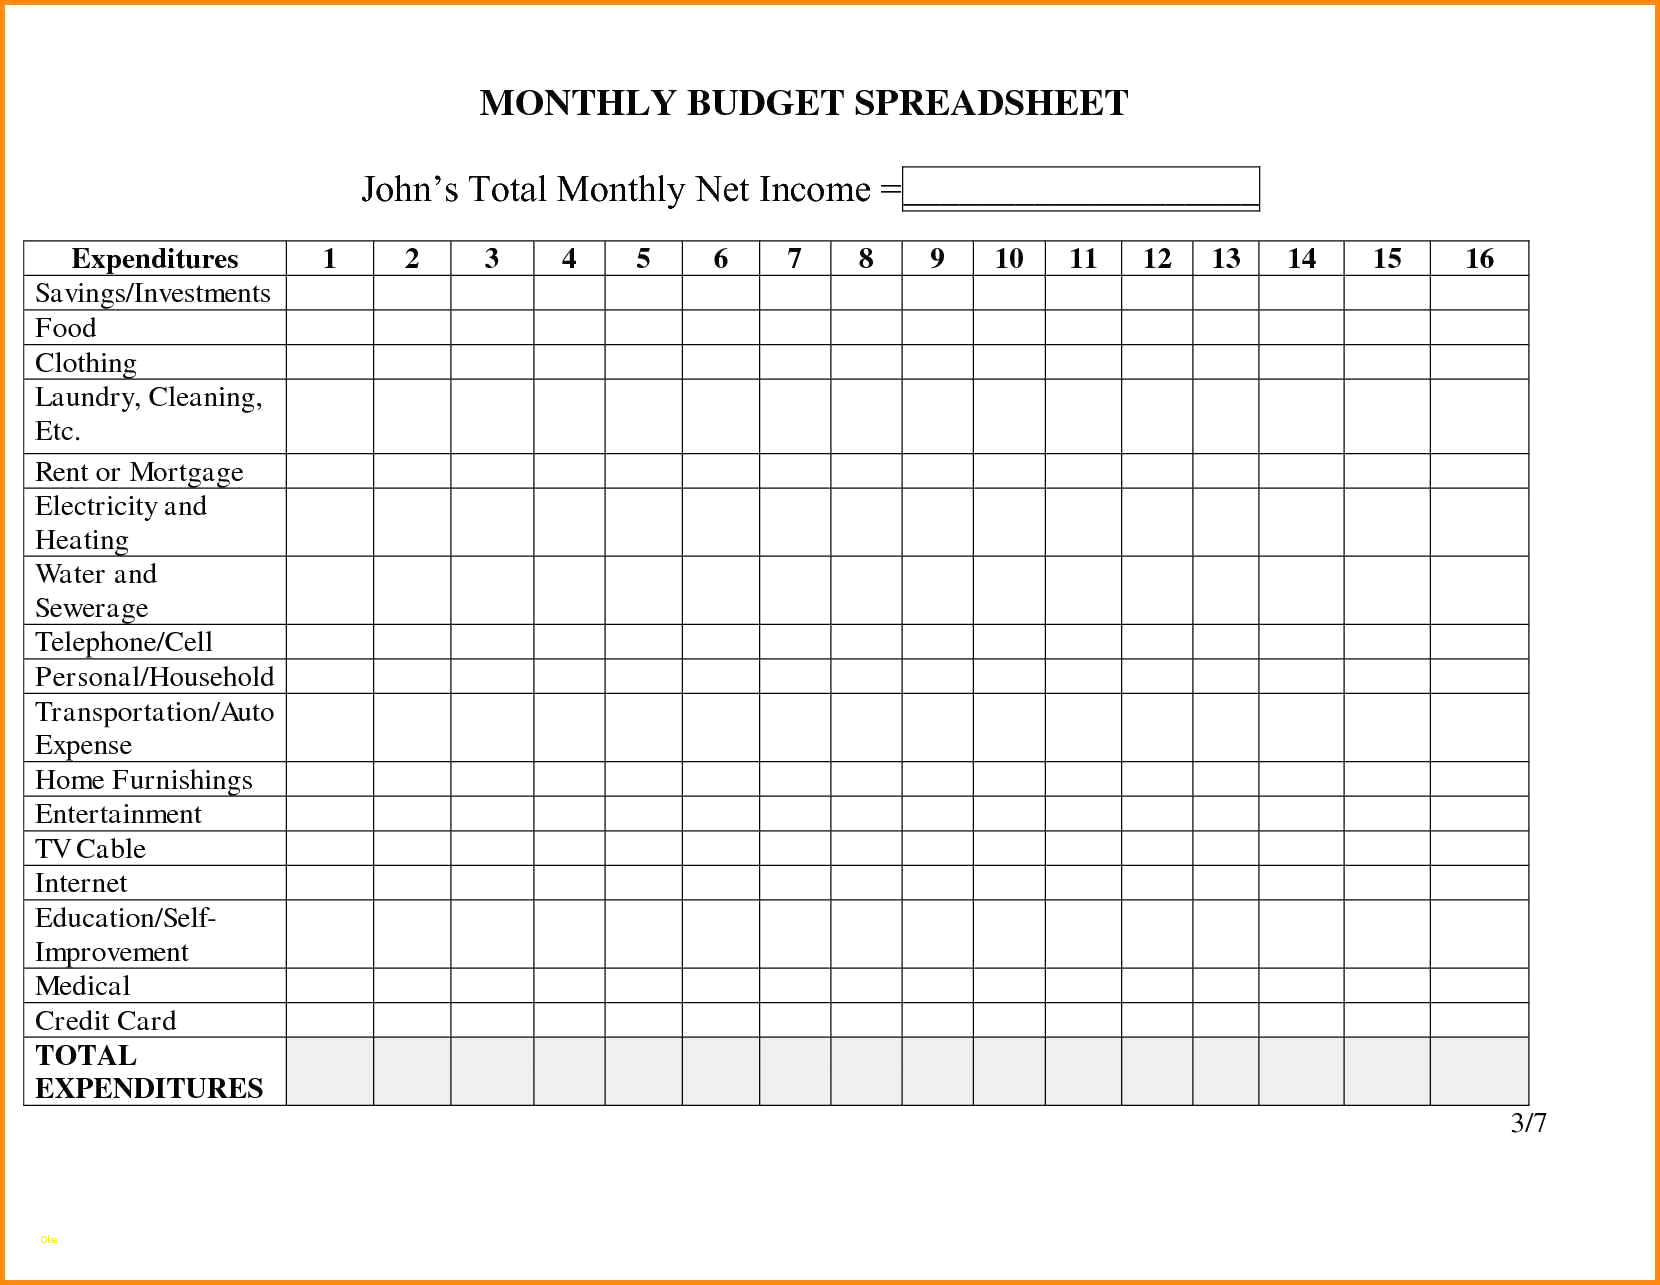 Monthly Business Expense Template Inspirational In E And Expenses Within Monthly Expenses Spreadsheet For Small Business